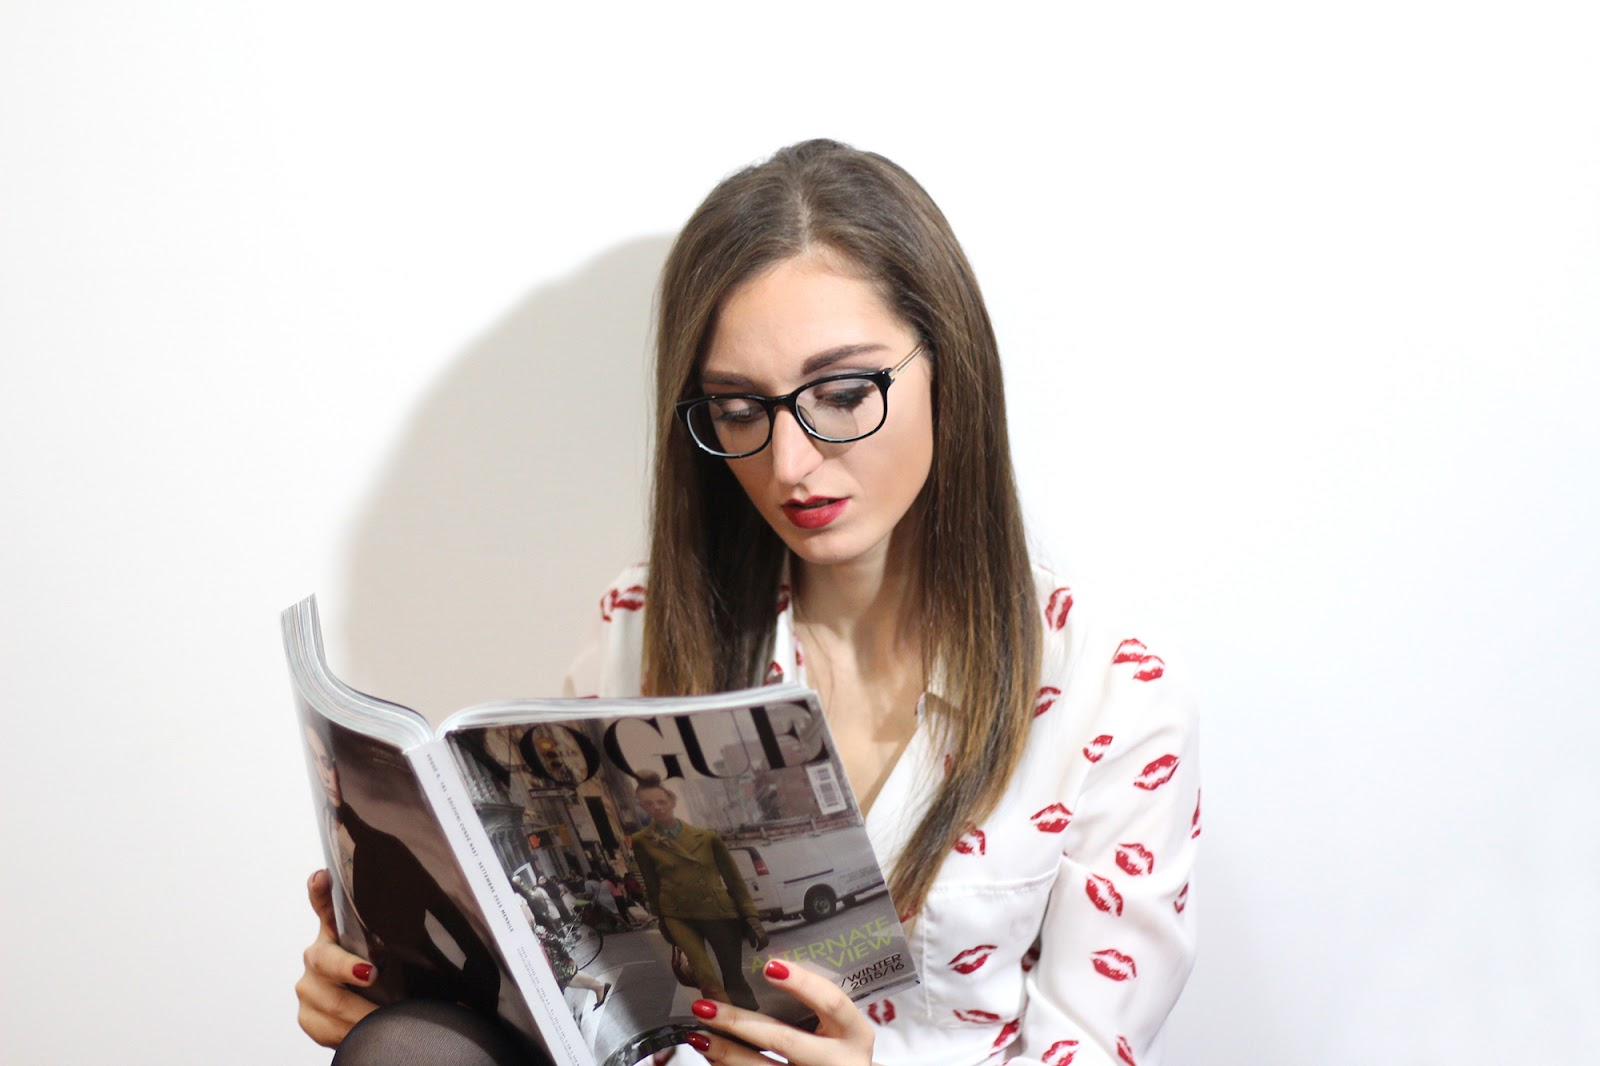 Occhiali Firmoo low cost glasses woman fashion blogger trend nerd girl